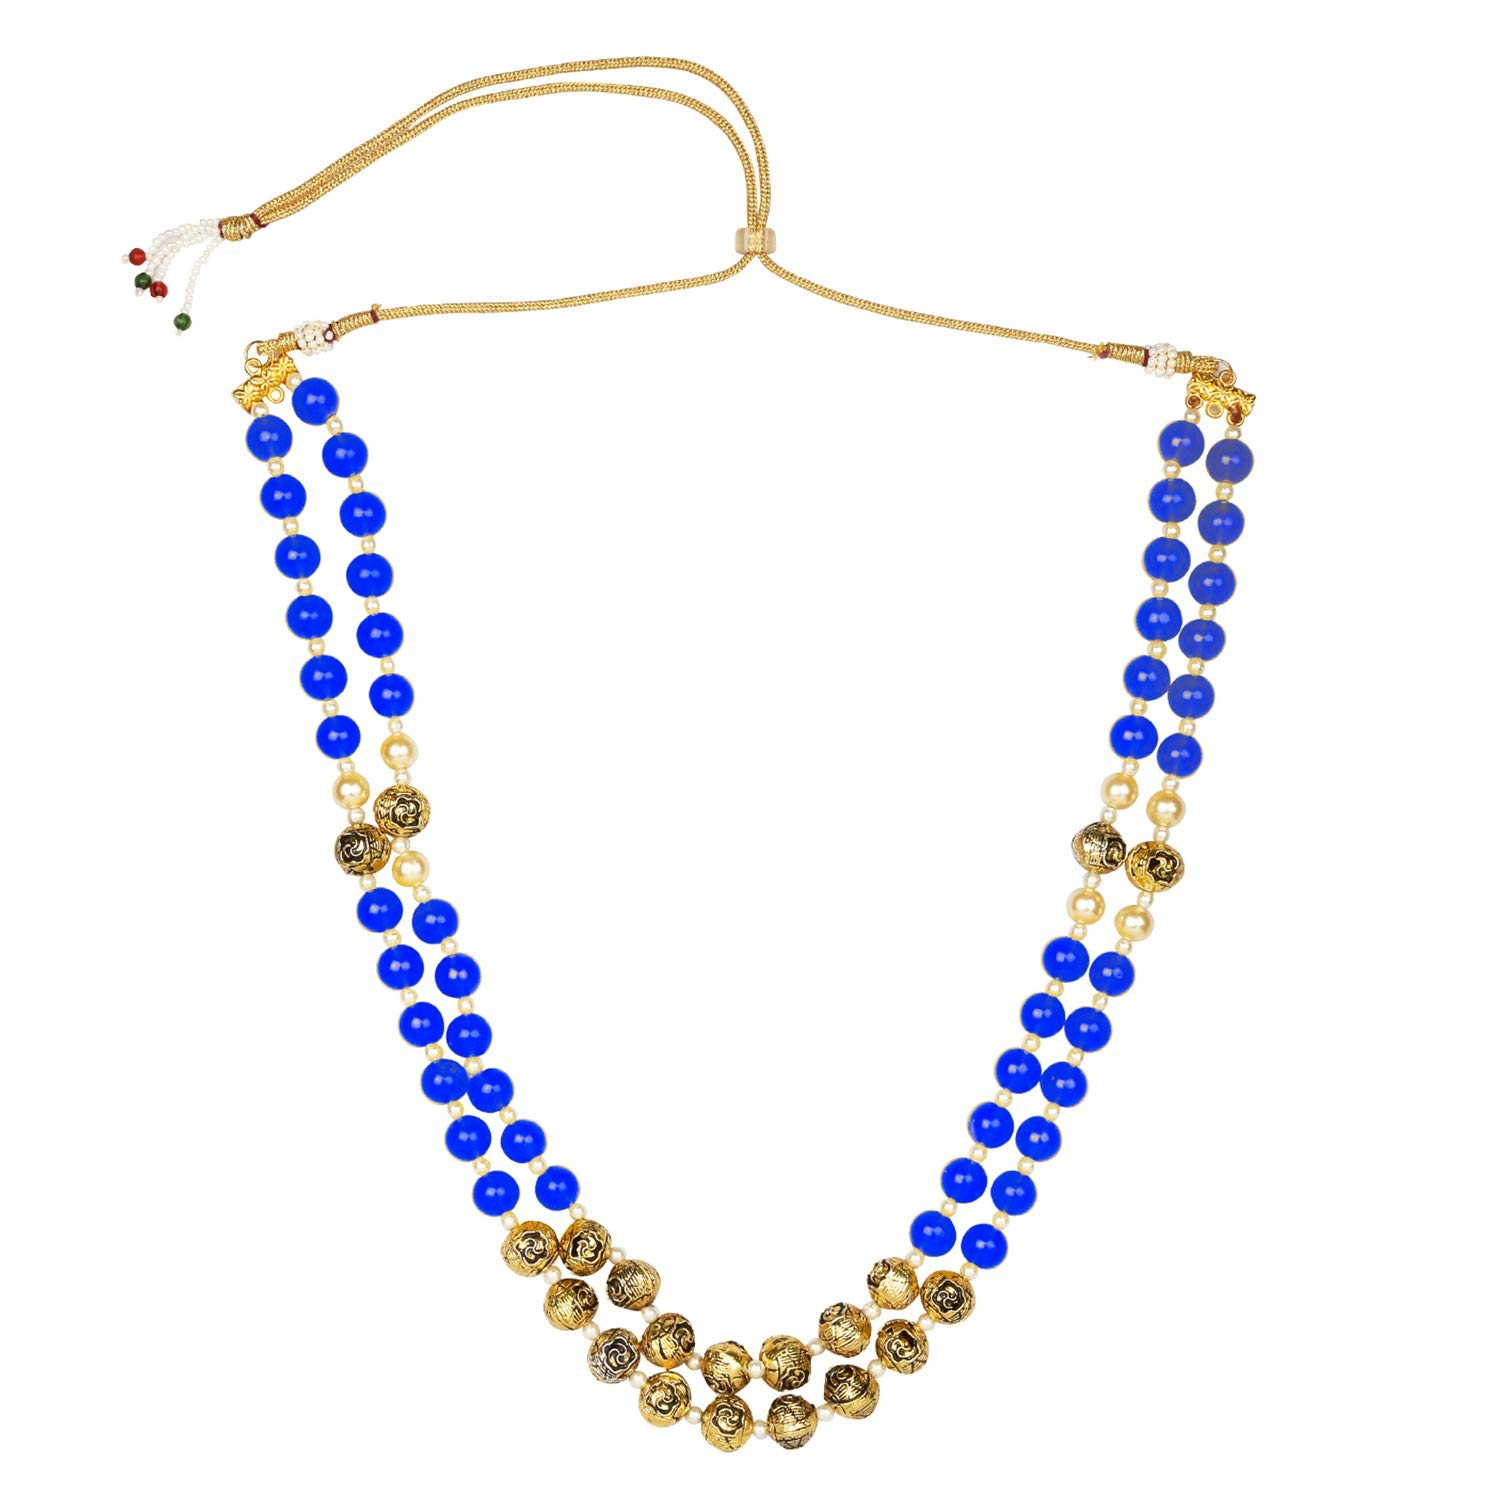 Efulgenz Indian Bollywood Antique Multi Layered Faux Pearl Beaded Bridal Wedding Strand Blue Statement Necklace Jewelry